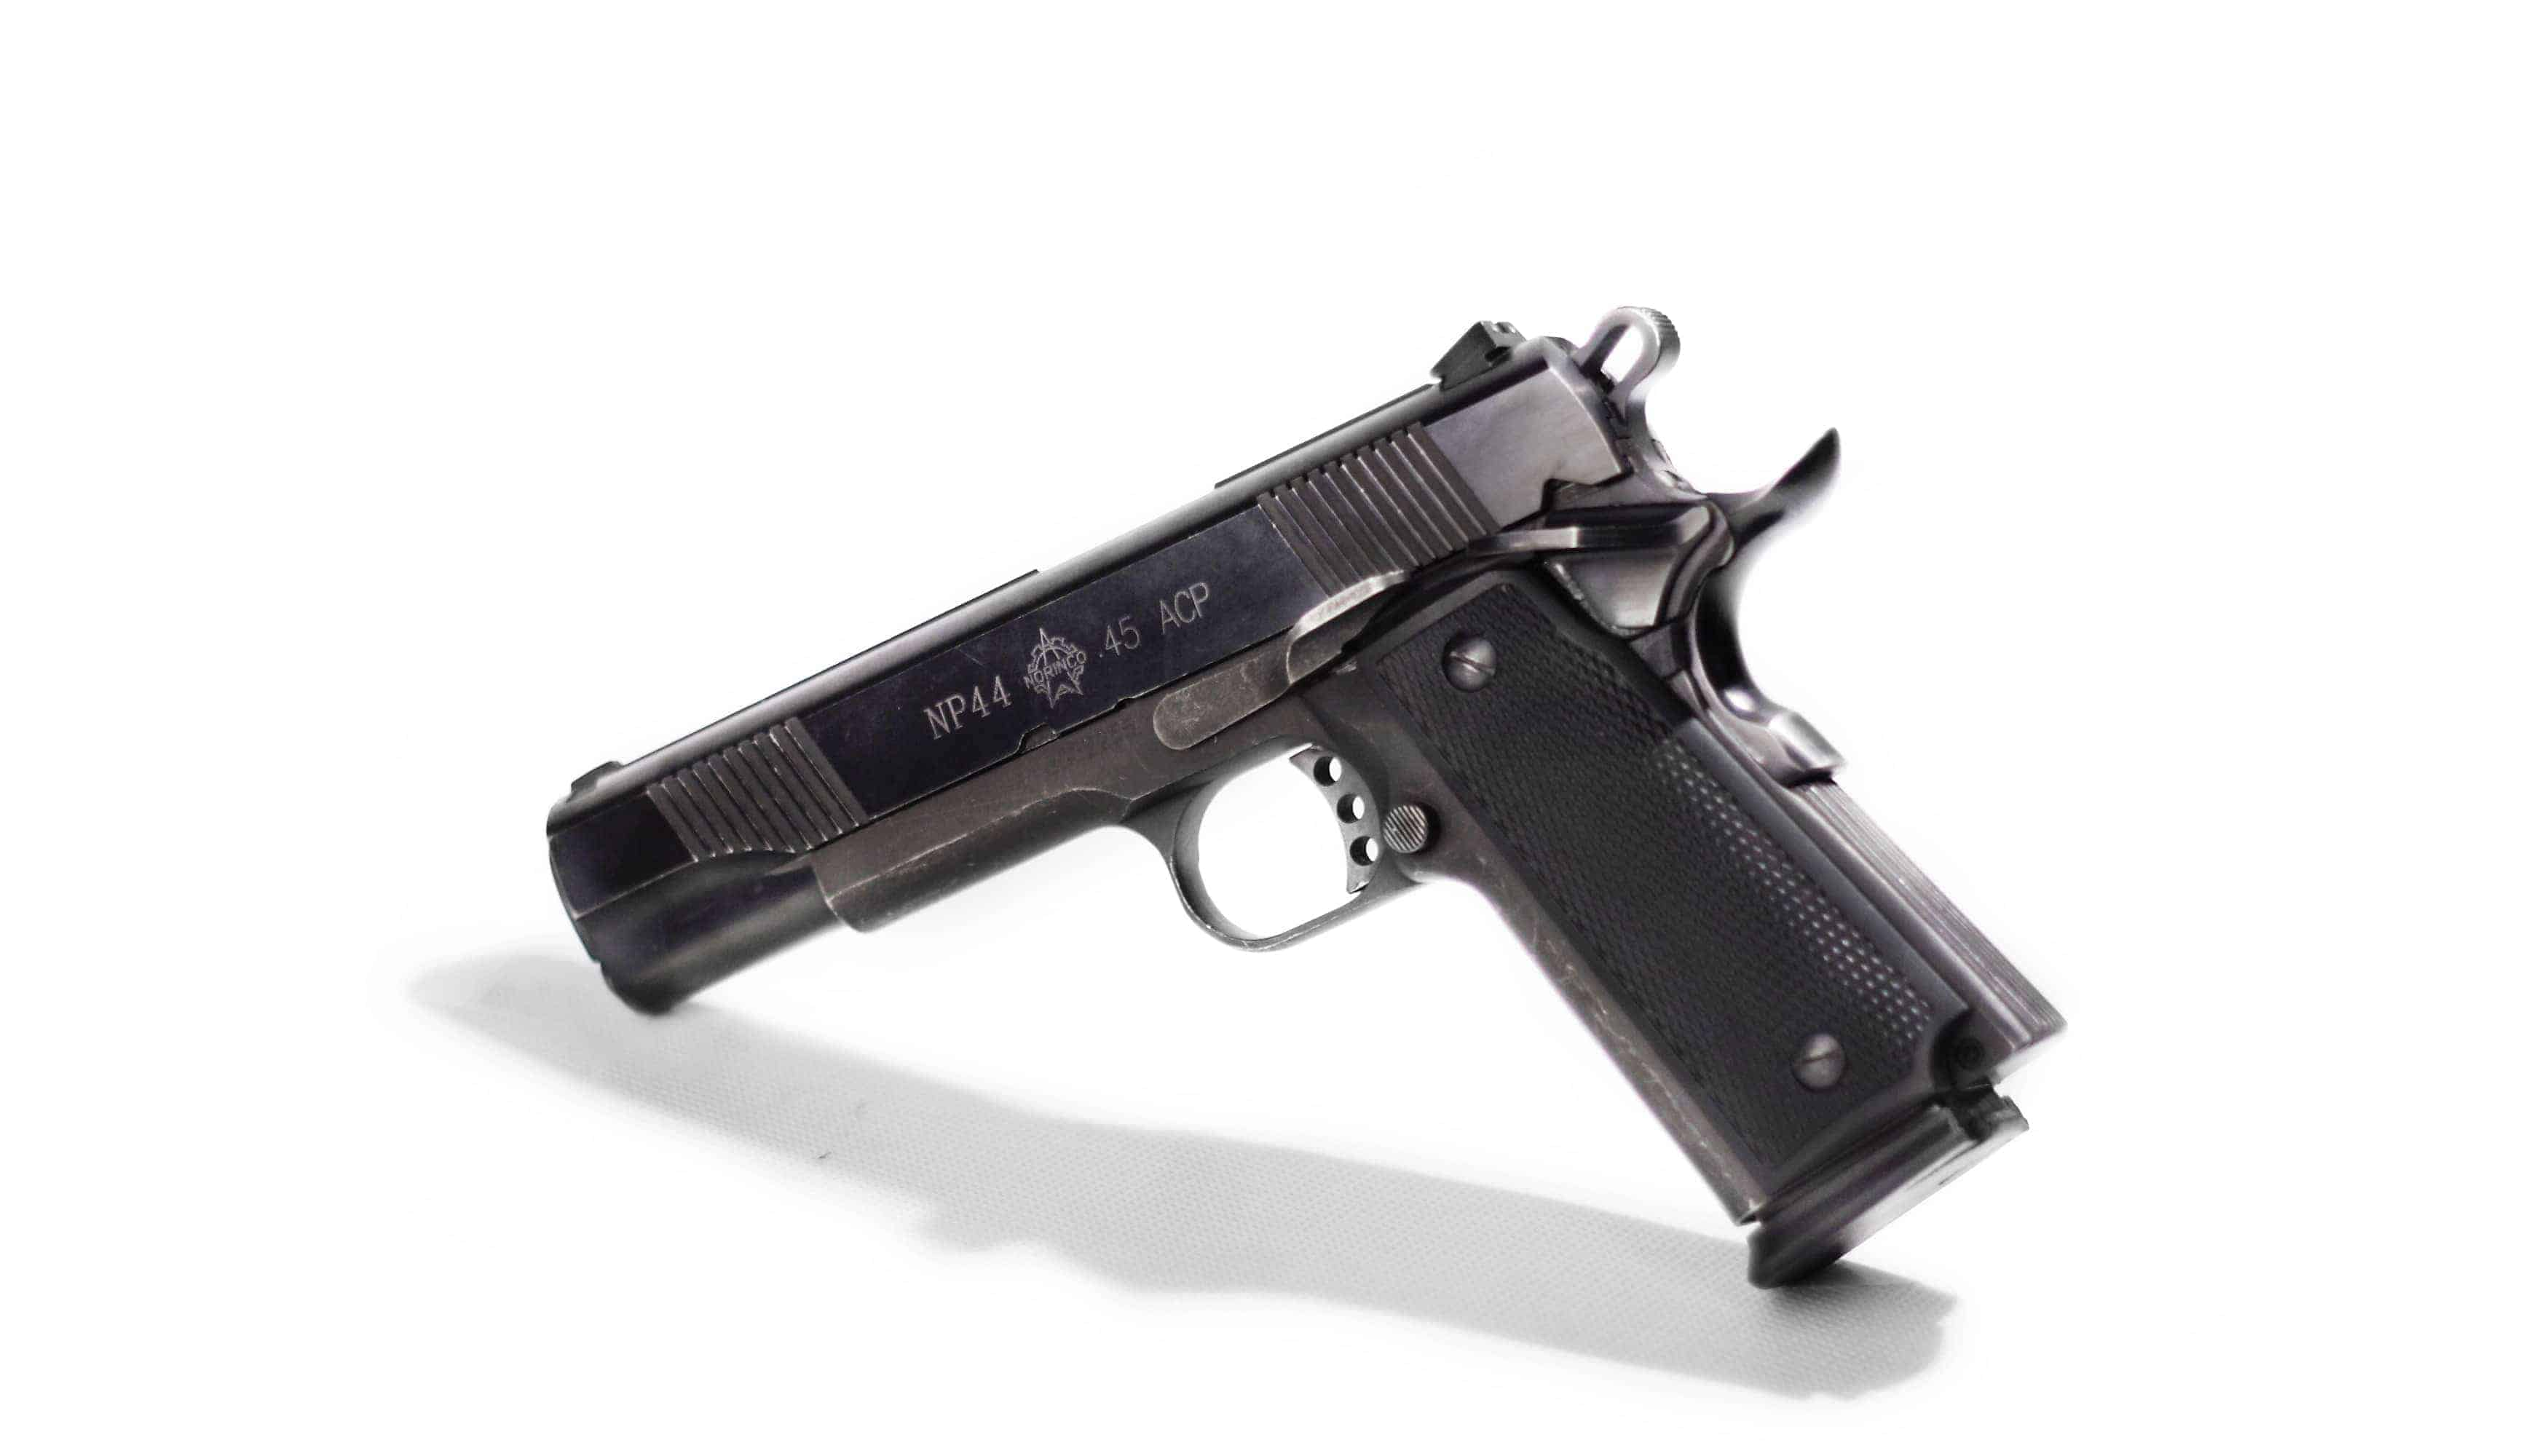 https://strzelnicabojowa.pl/uploads/guns/NORINCO 1911A1(.45ACP)-WEB-WIDE.JPG